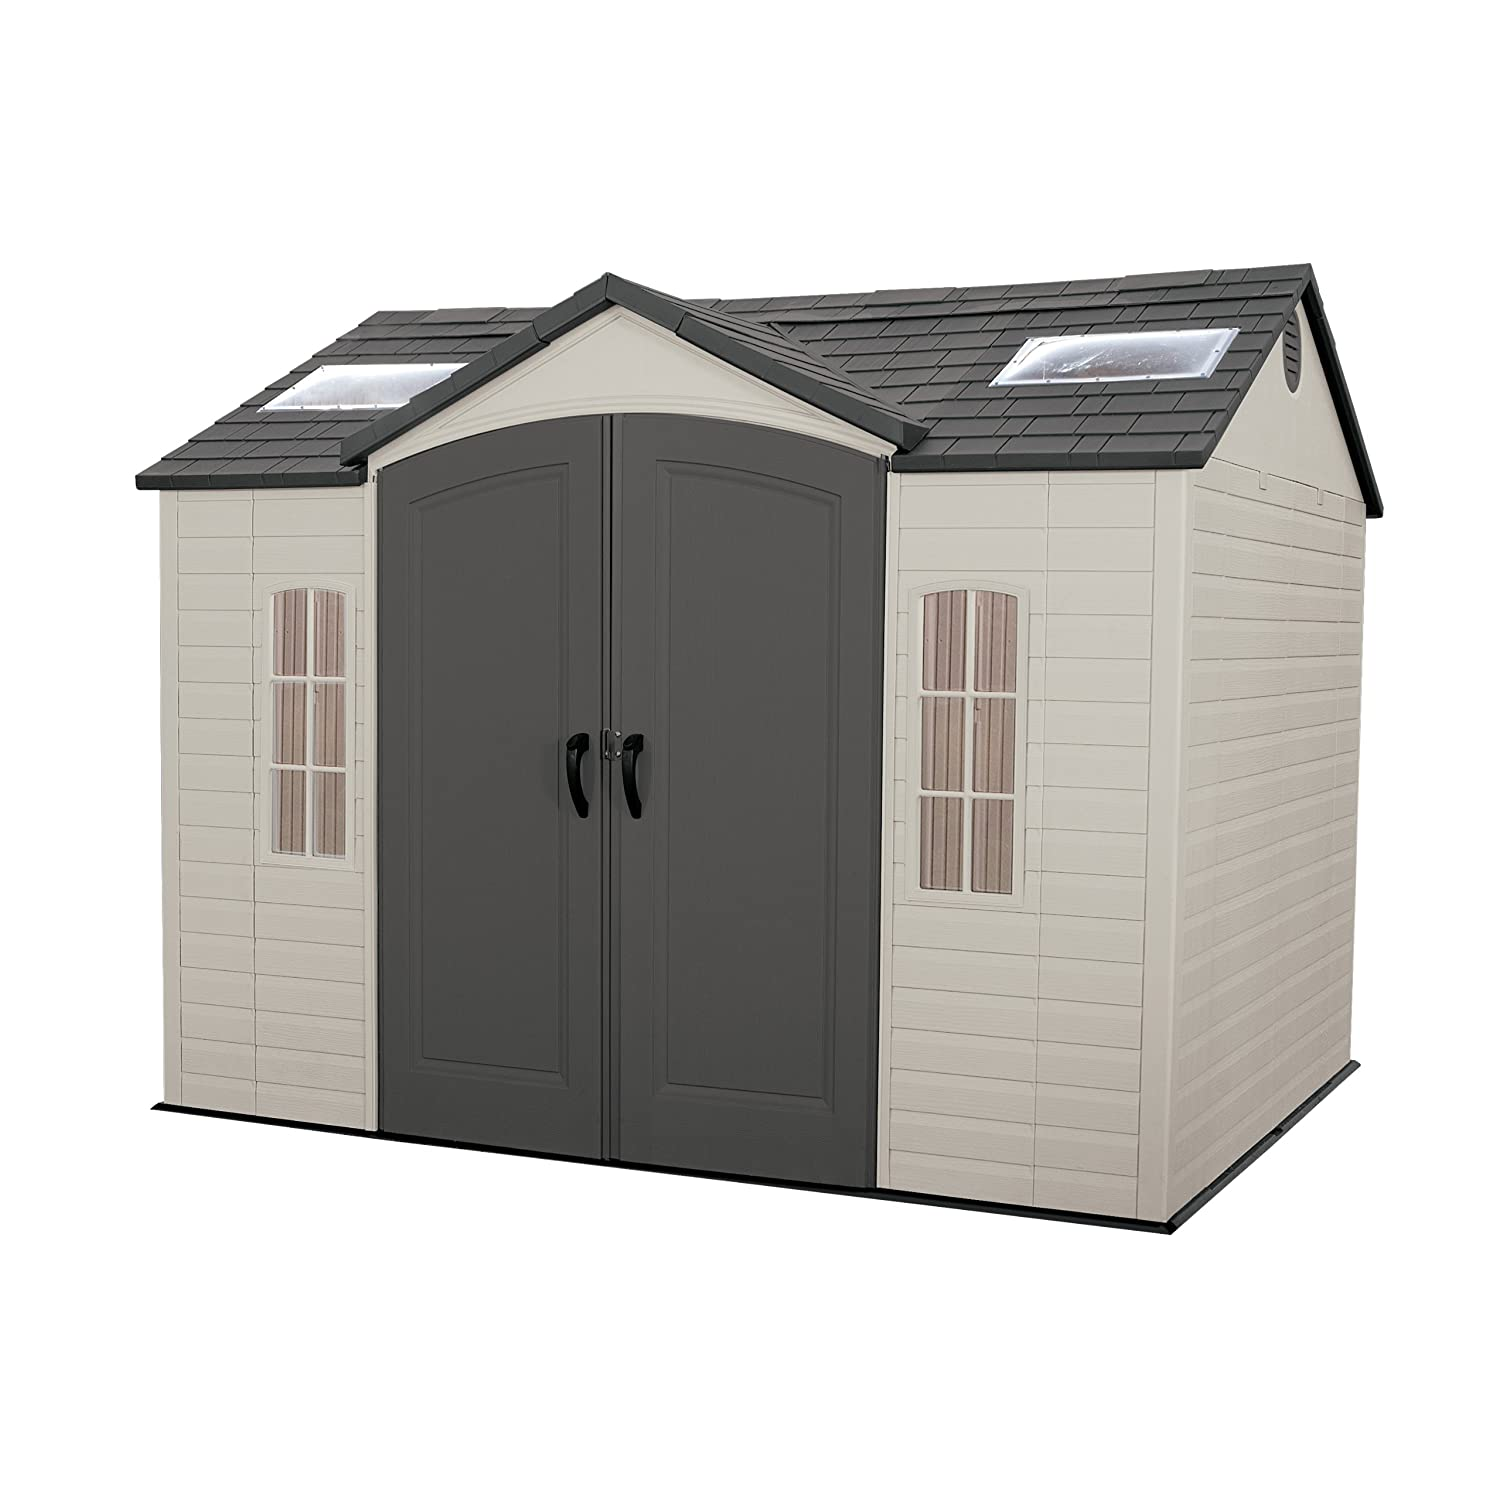 Lifetime 8-by-10-foot outdoor storage shed